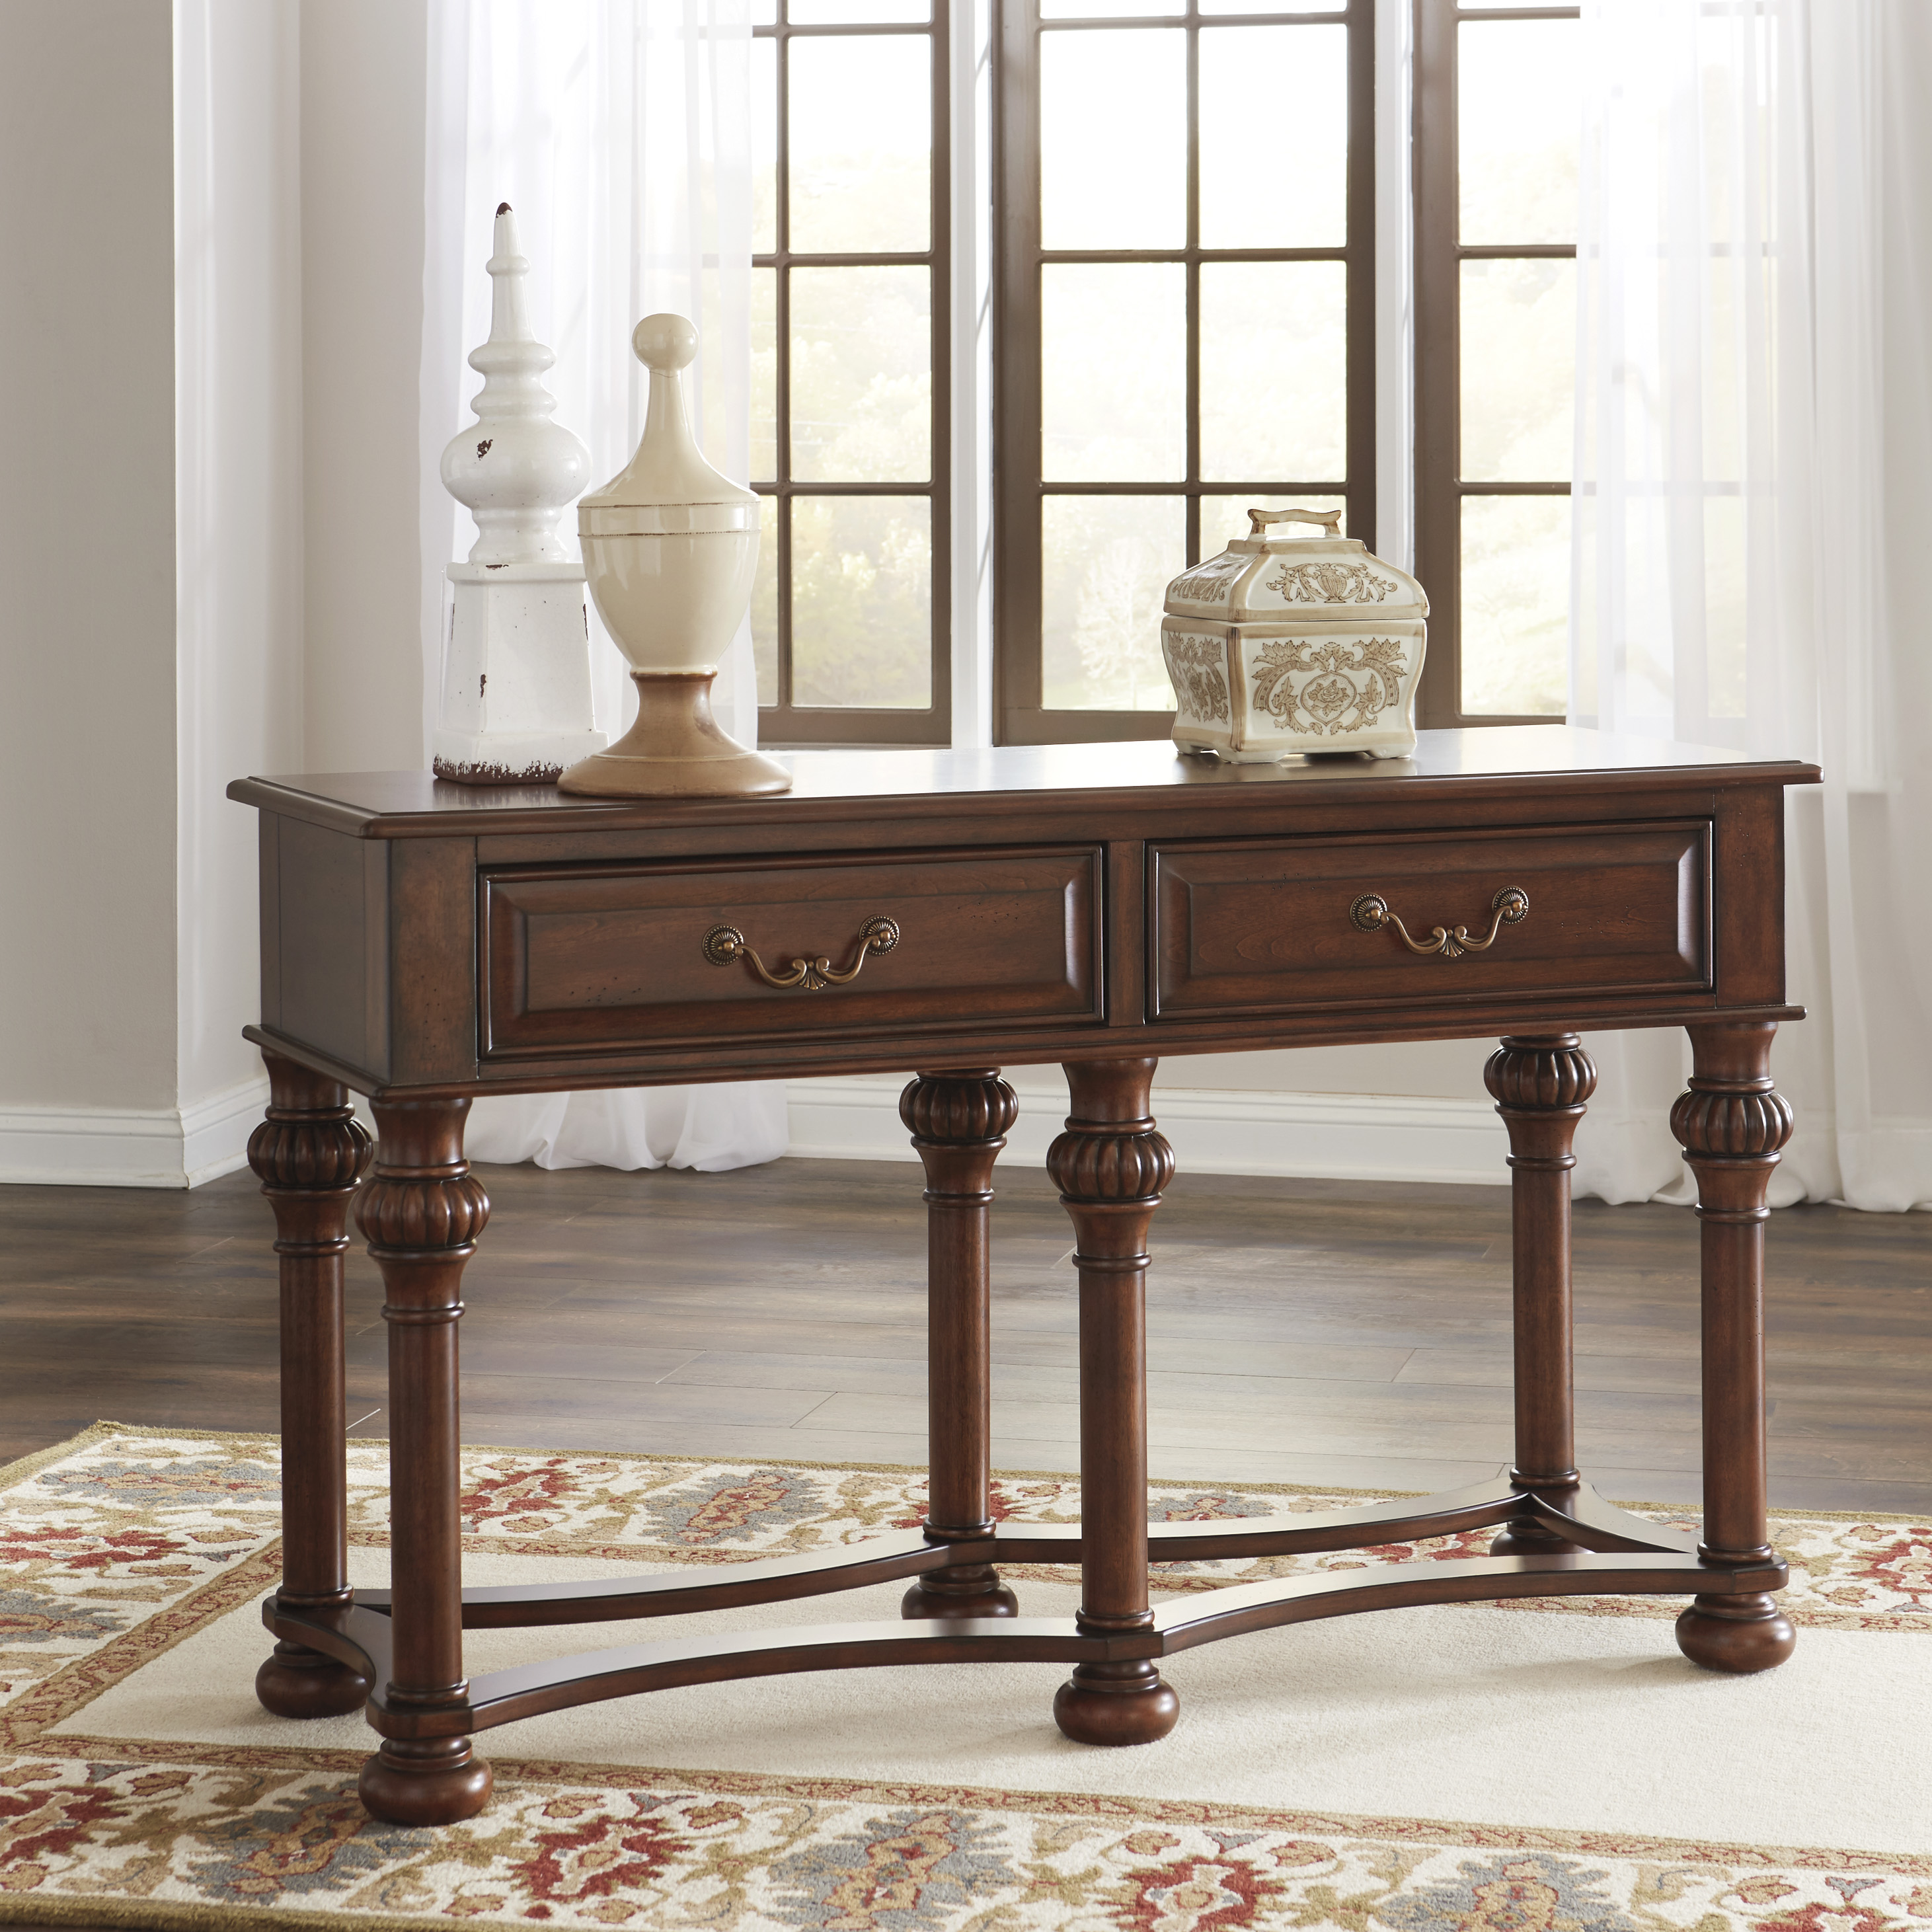 Ashley Cherry Wood Coffee Table: Beisterfield Sofa Table T907 Brown Cherry Wood Curved